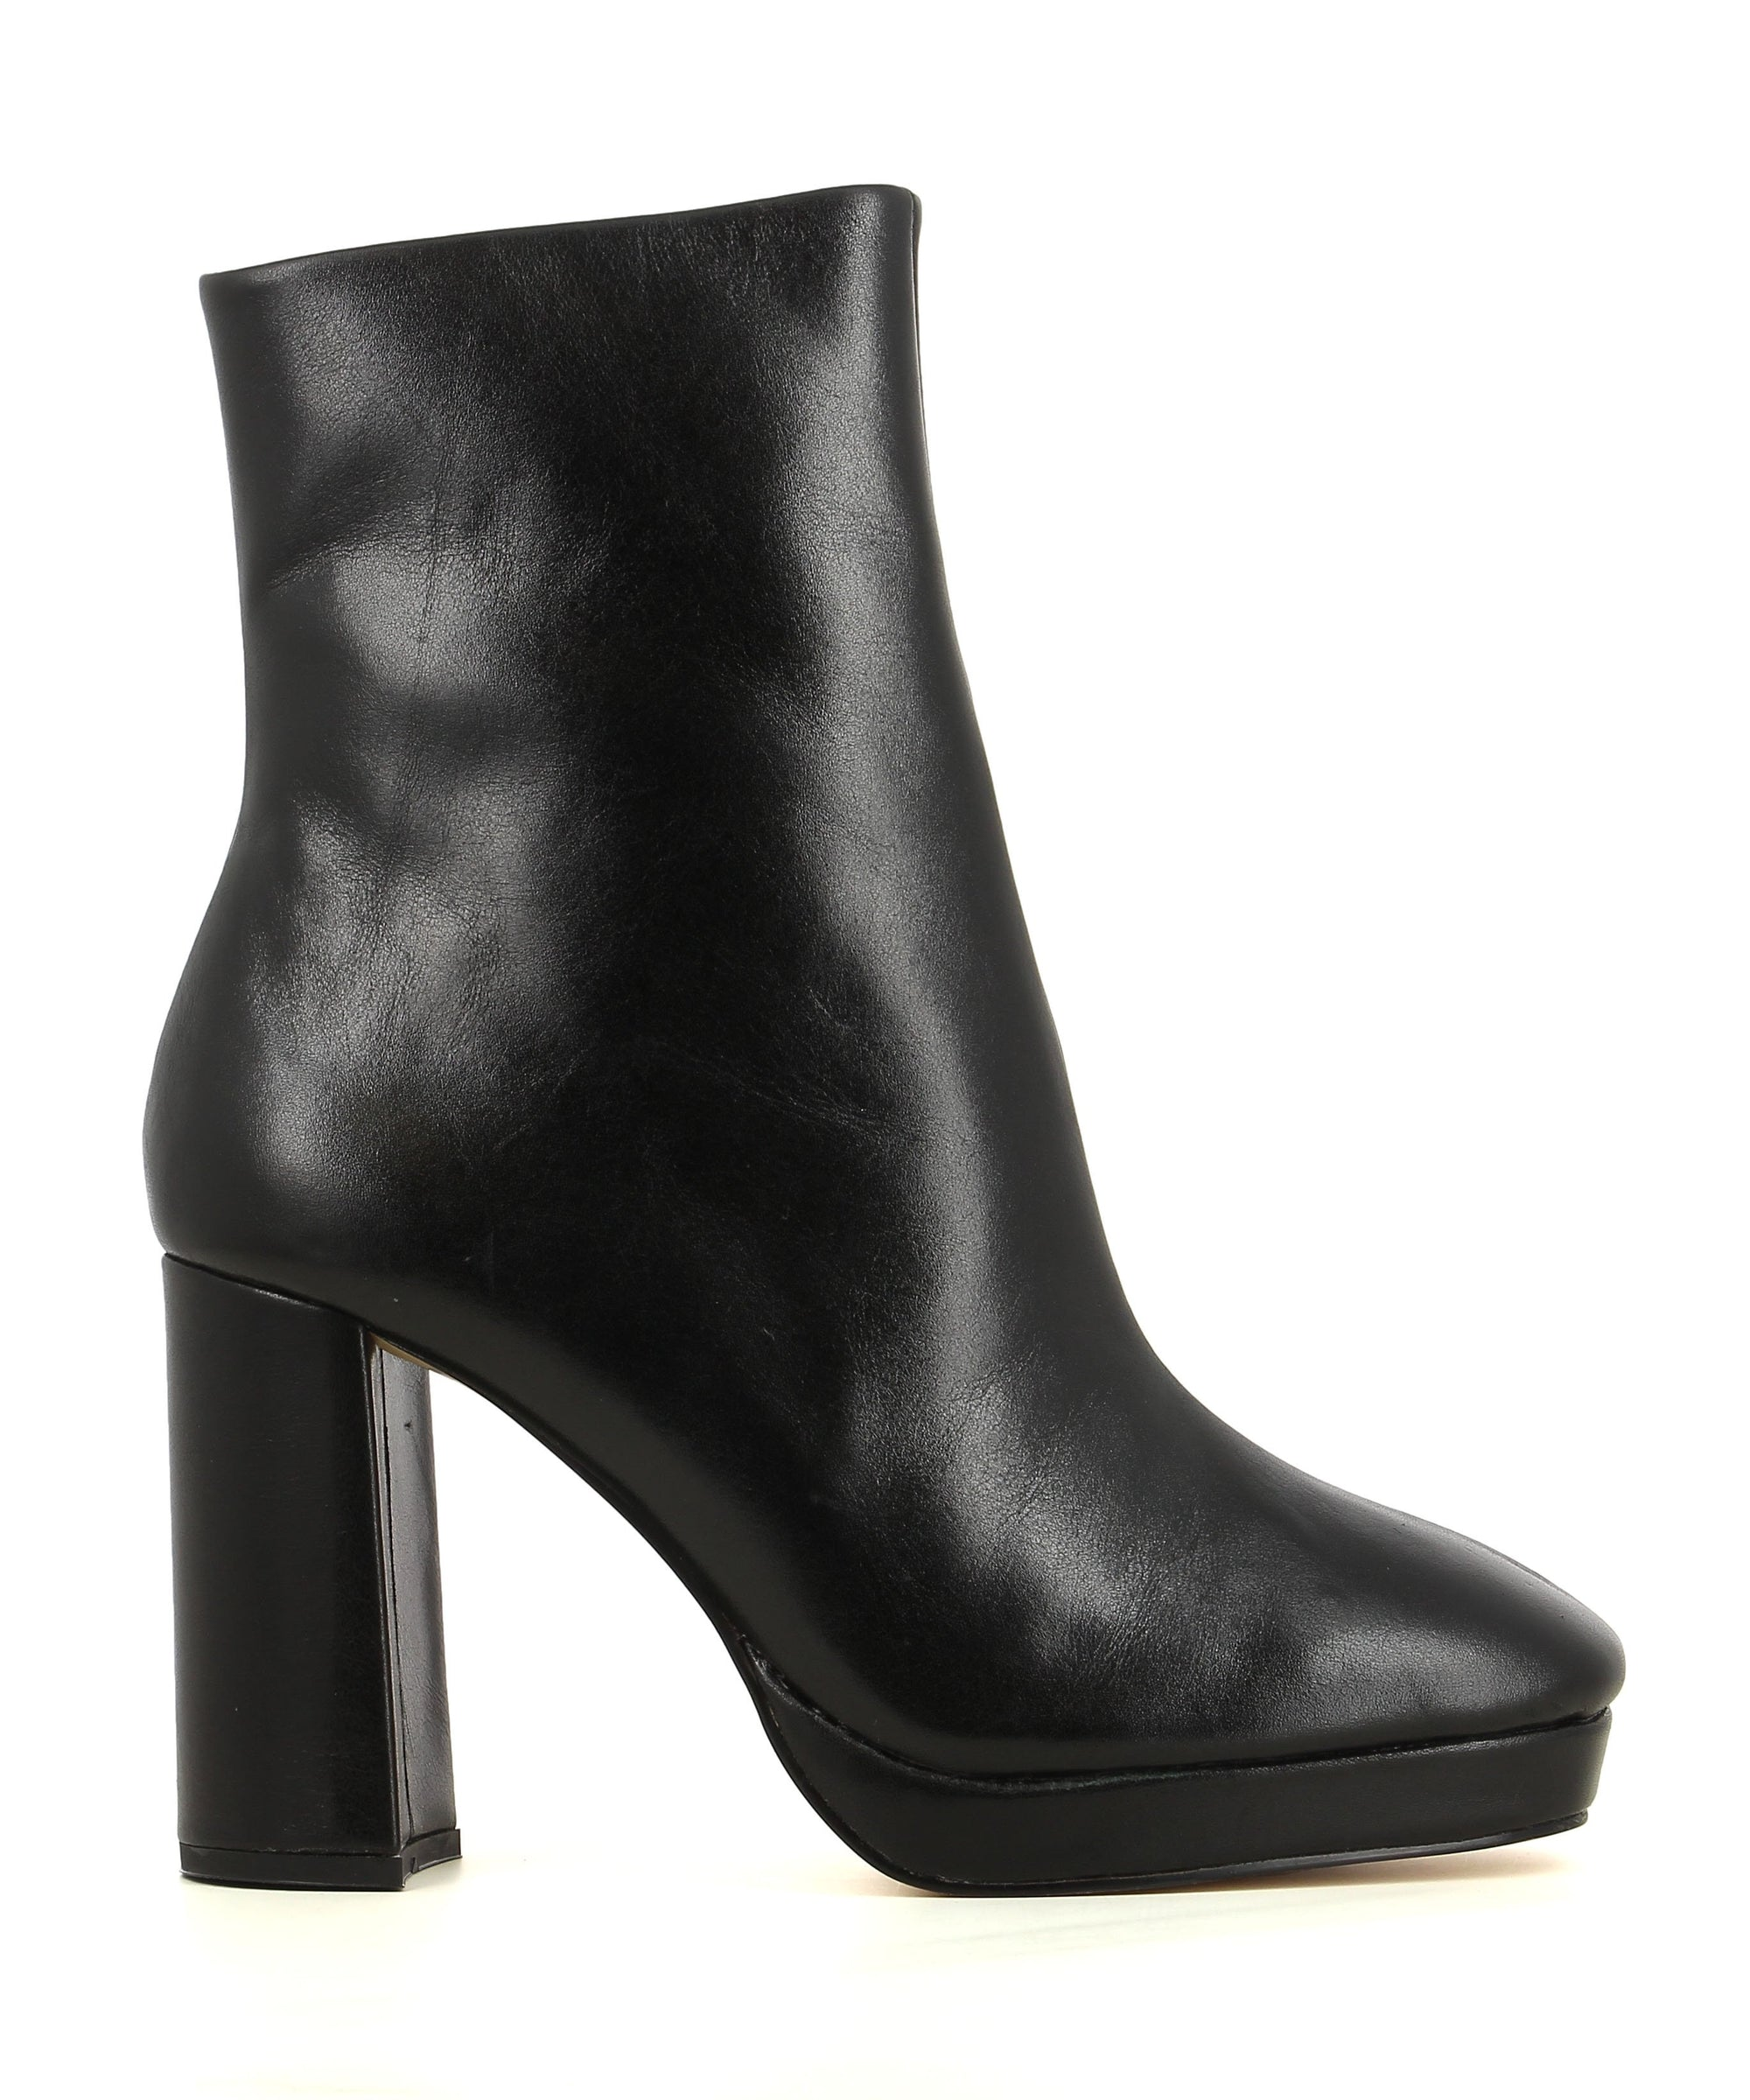 A black leather ankle boot by Zomp. The 'Upside' has a zipper fastening and features a platform sole, block heel and a soft square toe.